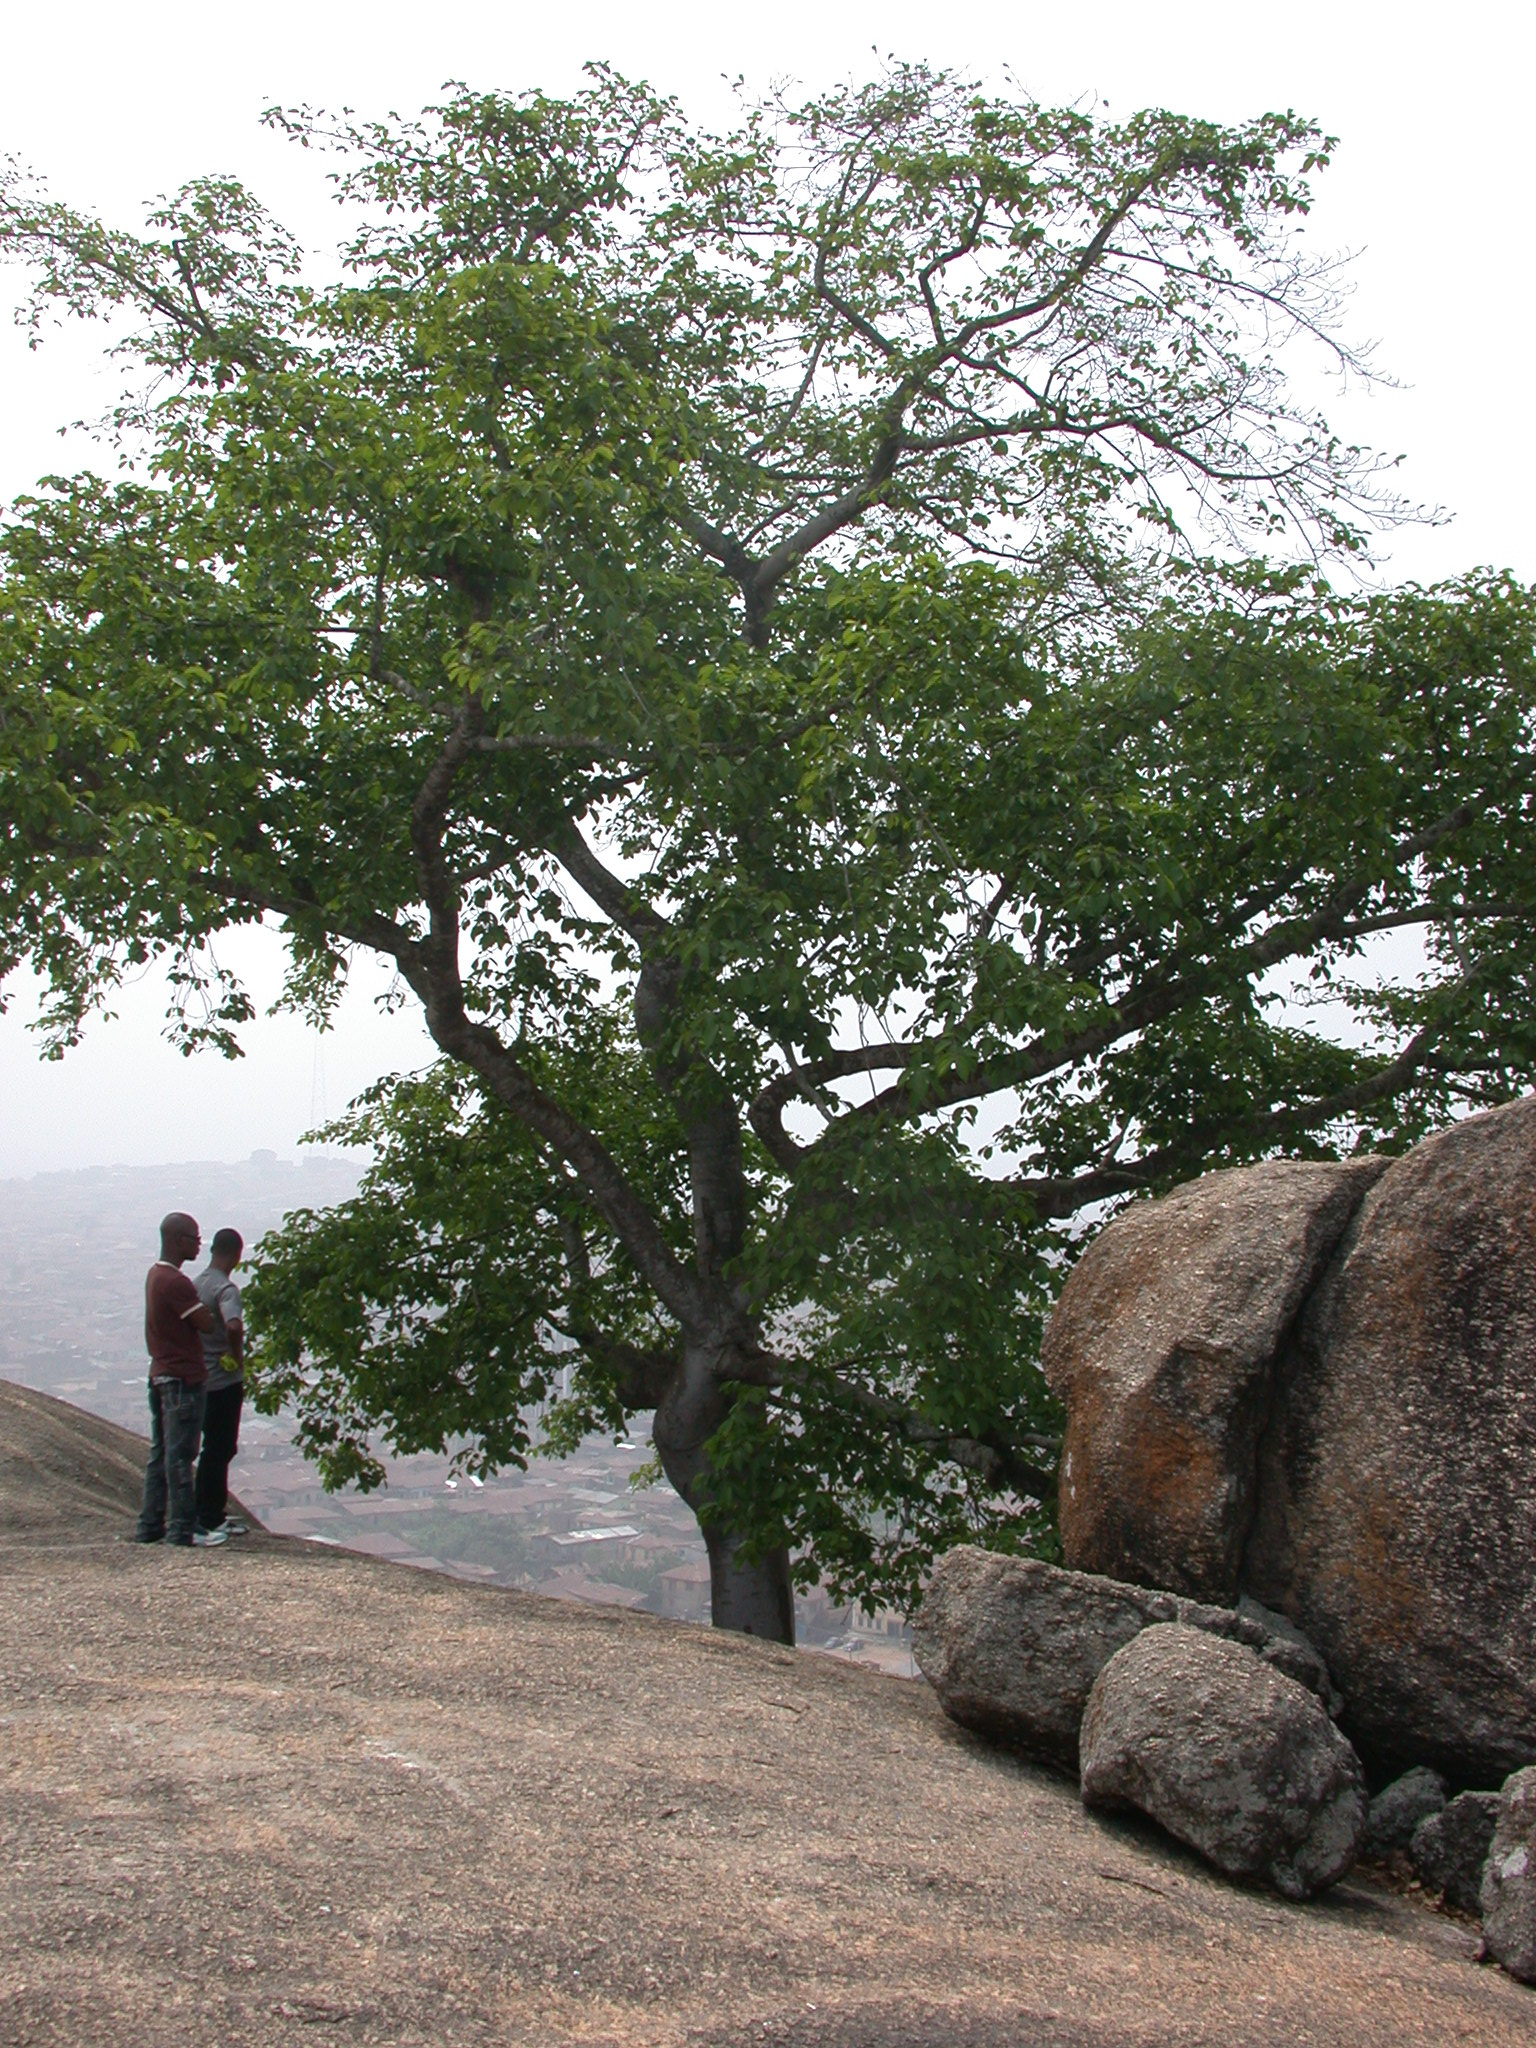 Iroko Crown Tree on Summit, Olumo Rock, Abeokuta, Nigeria